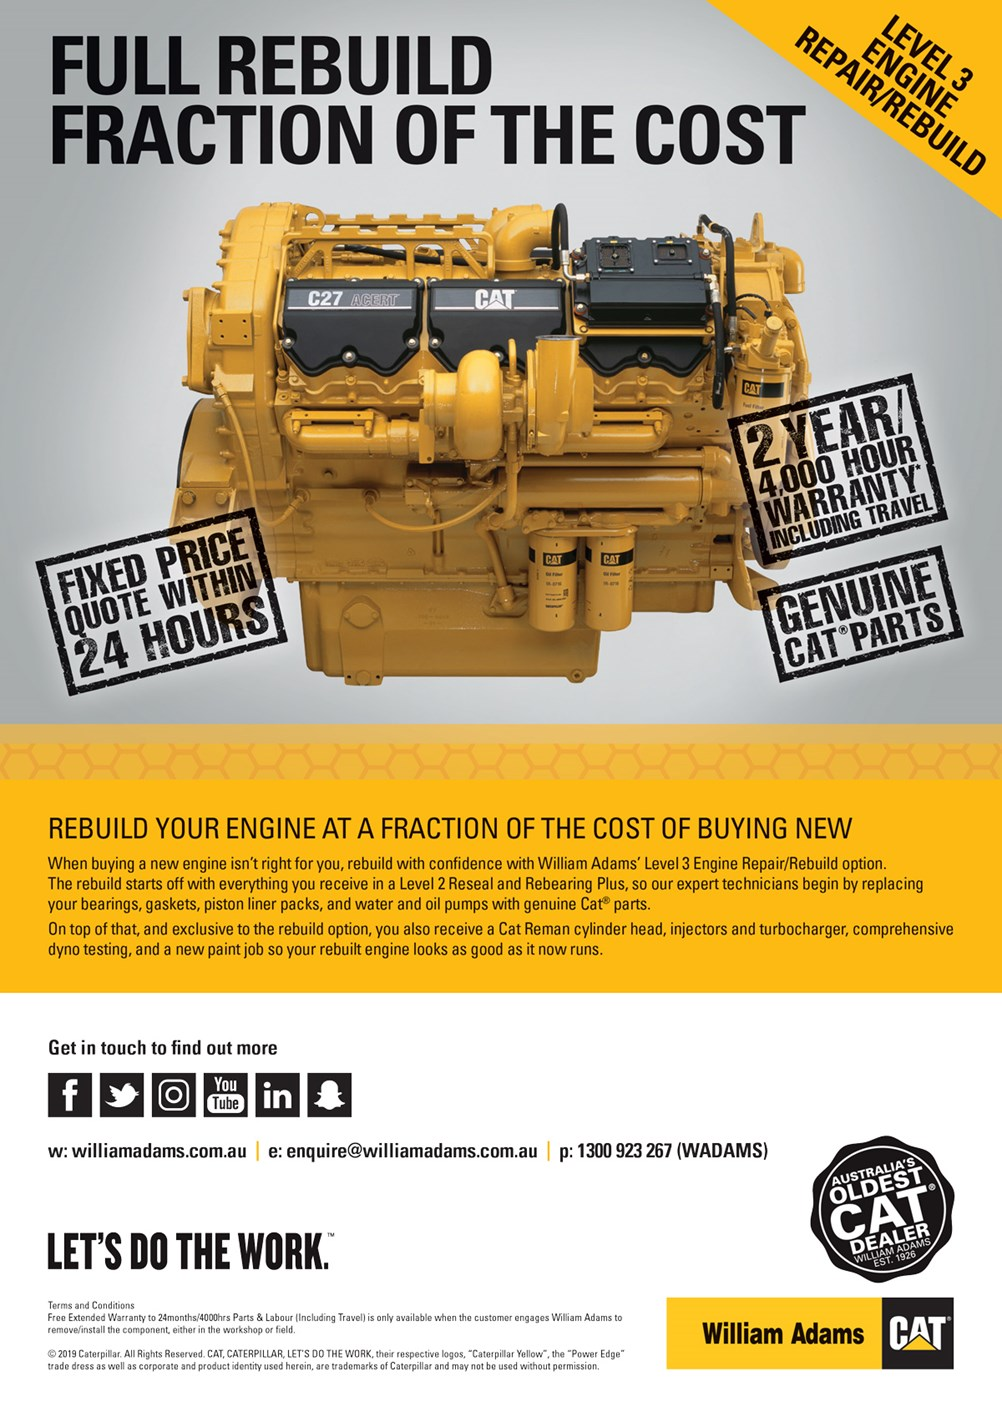 Level 3 Engine Repair/Rebuild | William Adams Cat